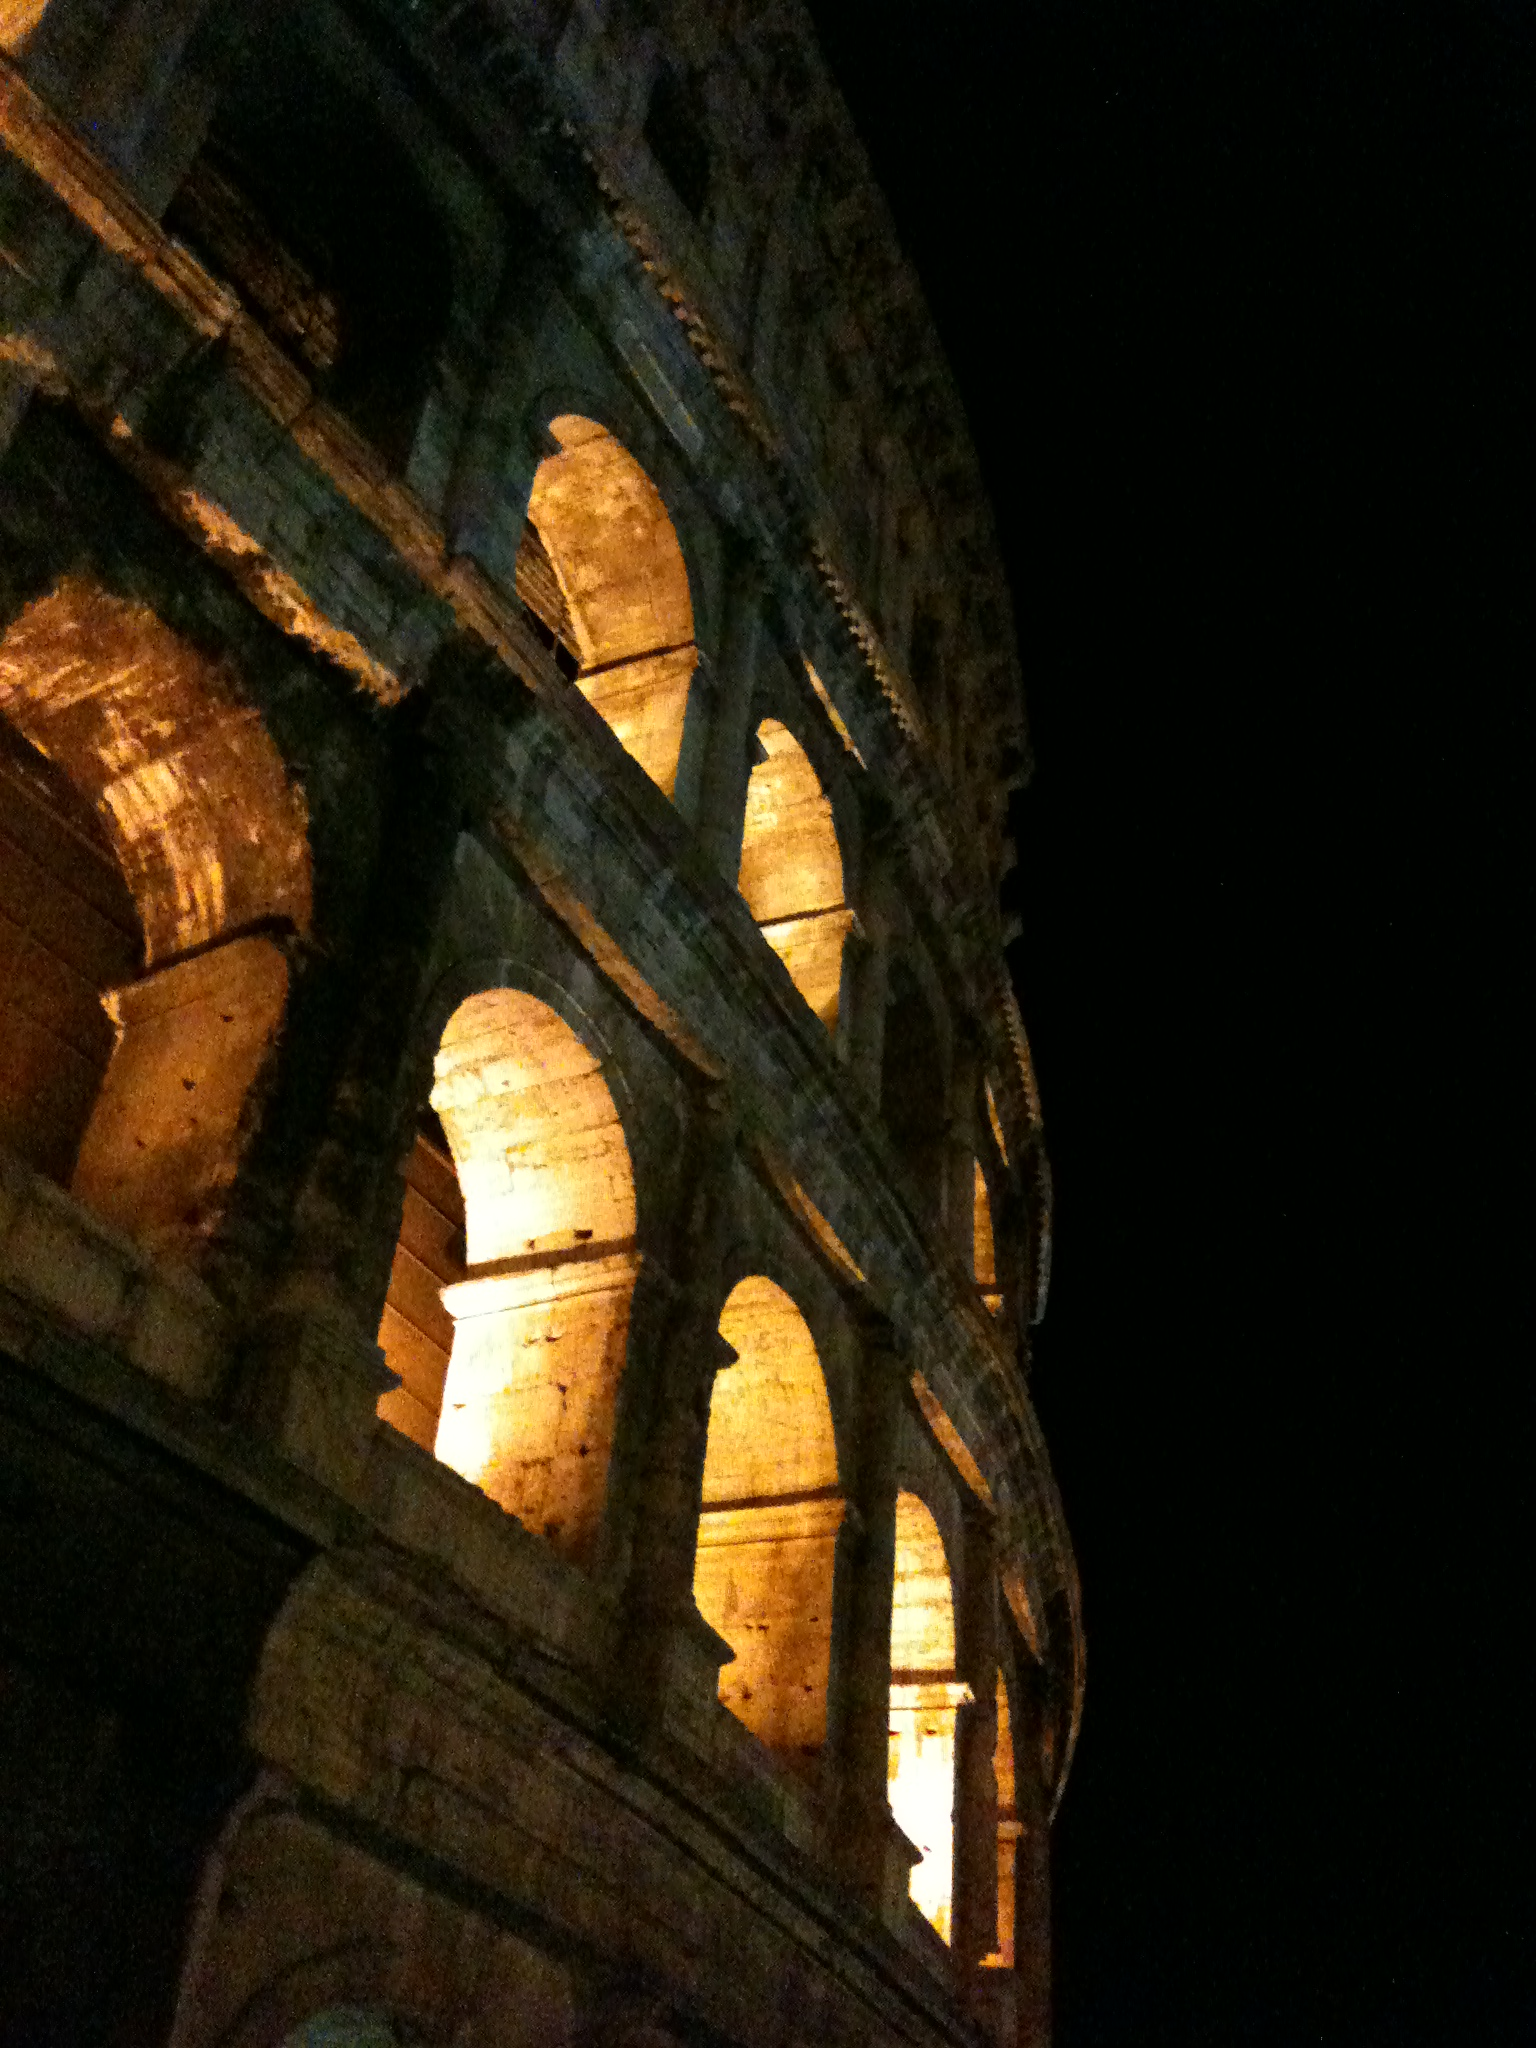 The colosseum is beautifully lit up at night.